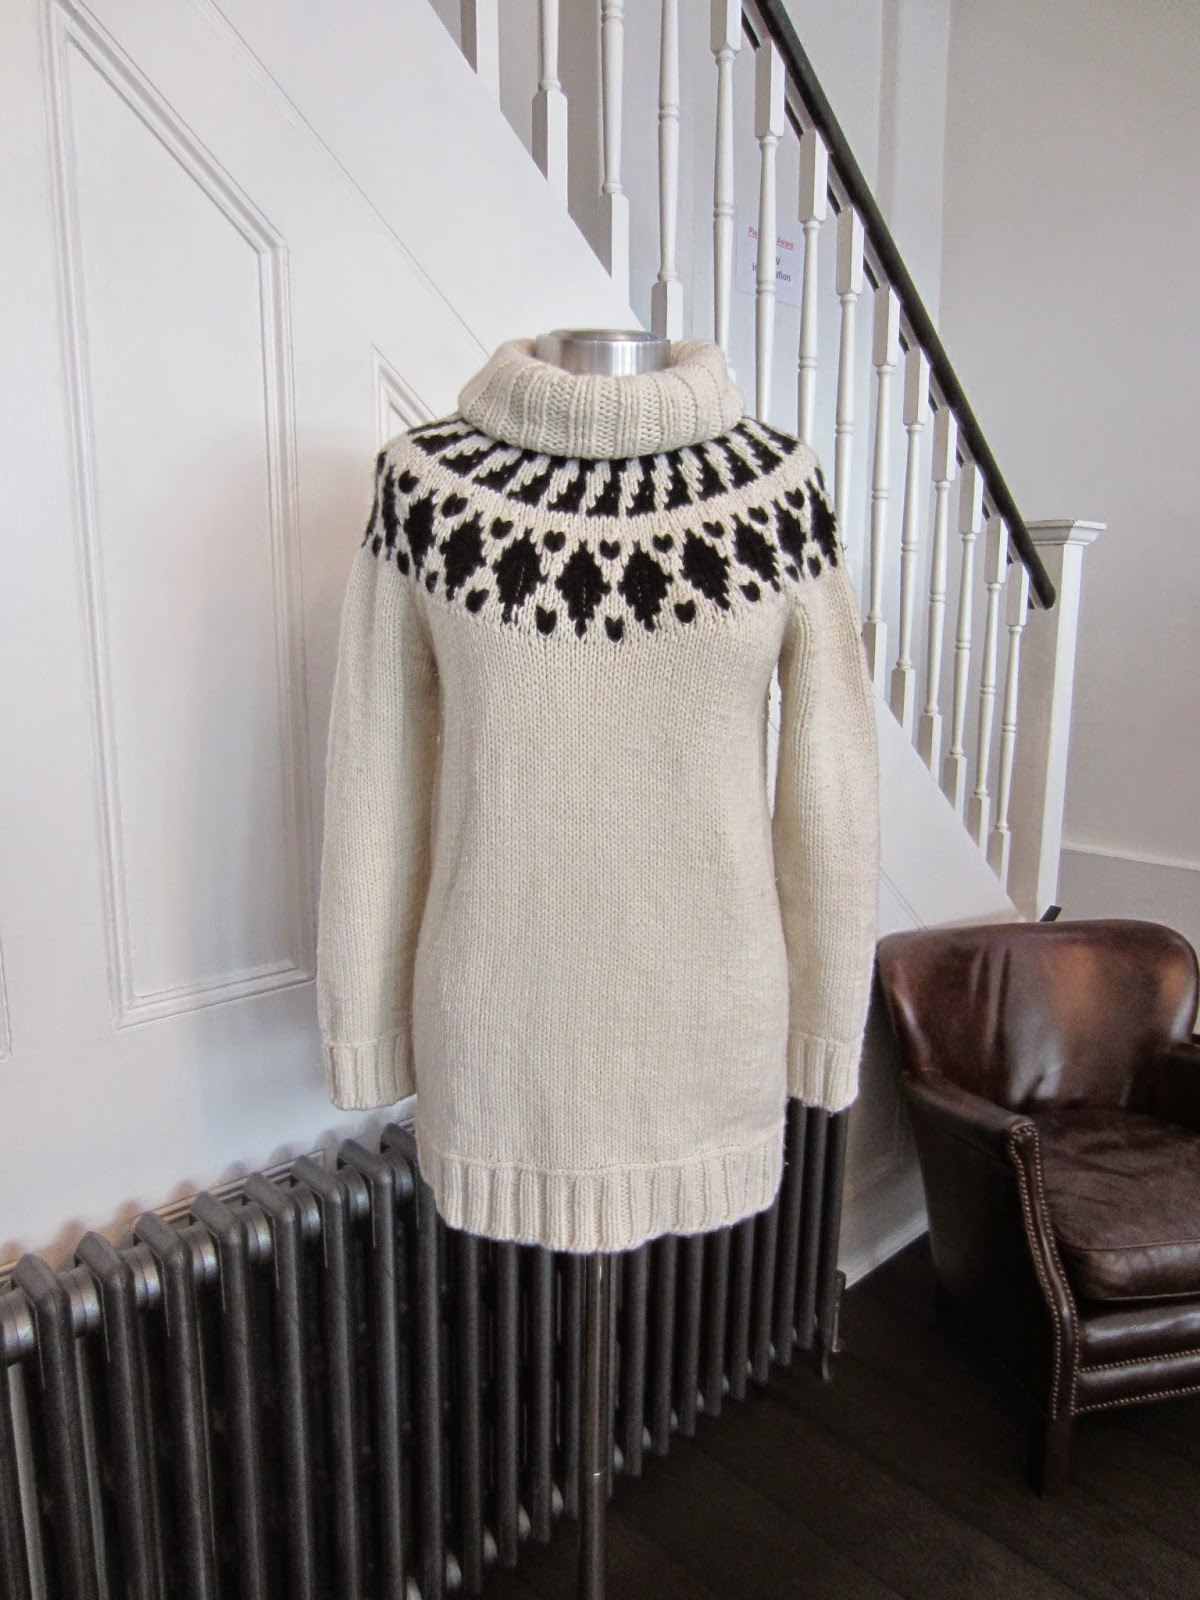 Moncler Black & White Knit